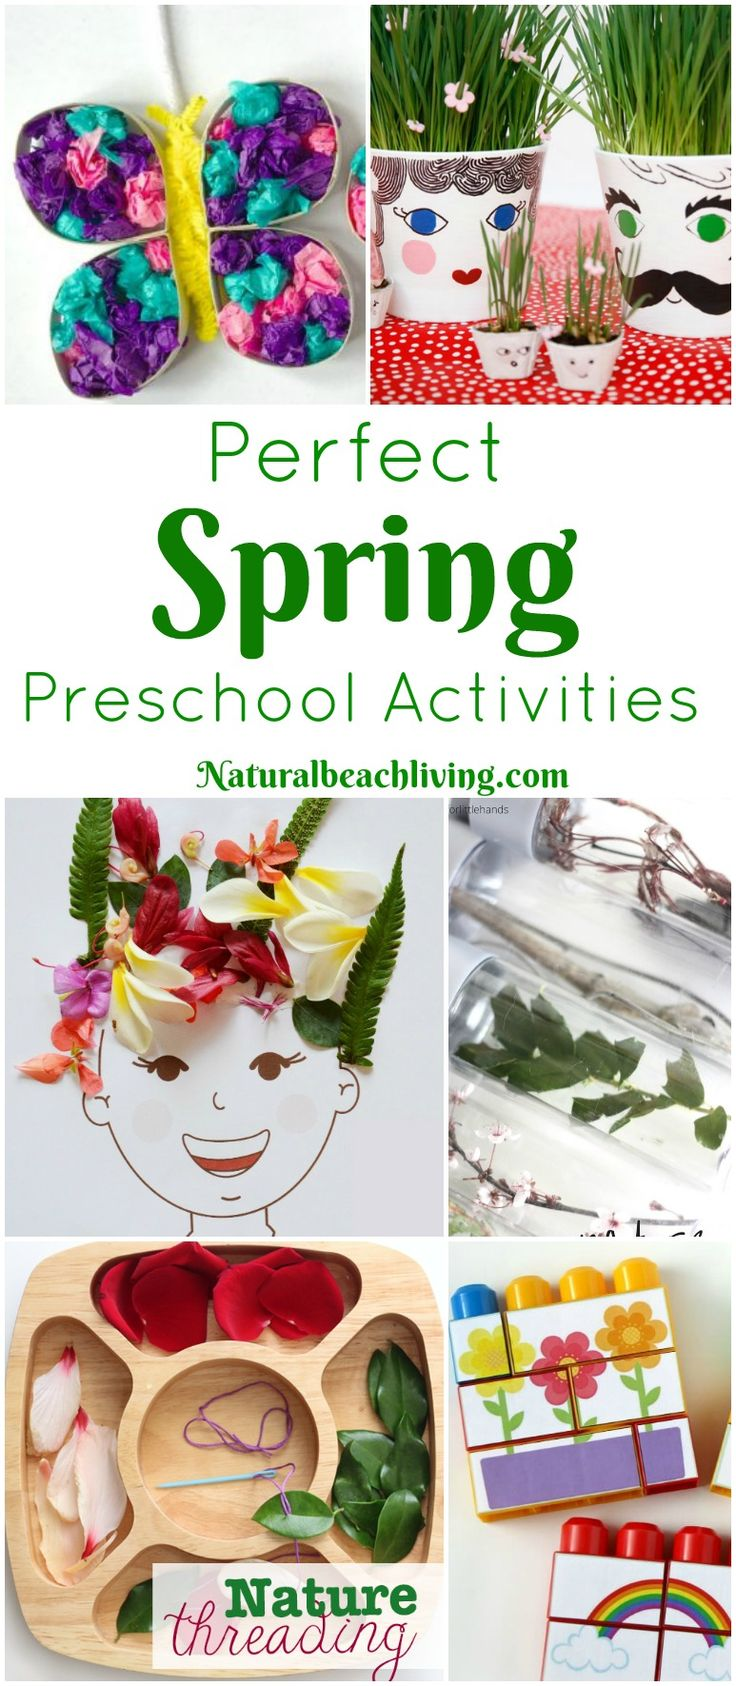 top 25 best spring activities ideas on pinterest flower crafts paper flowers for kids and. Black Bedroom Furniture Sets. Home Design Ideas